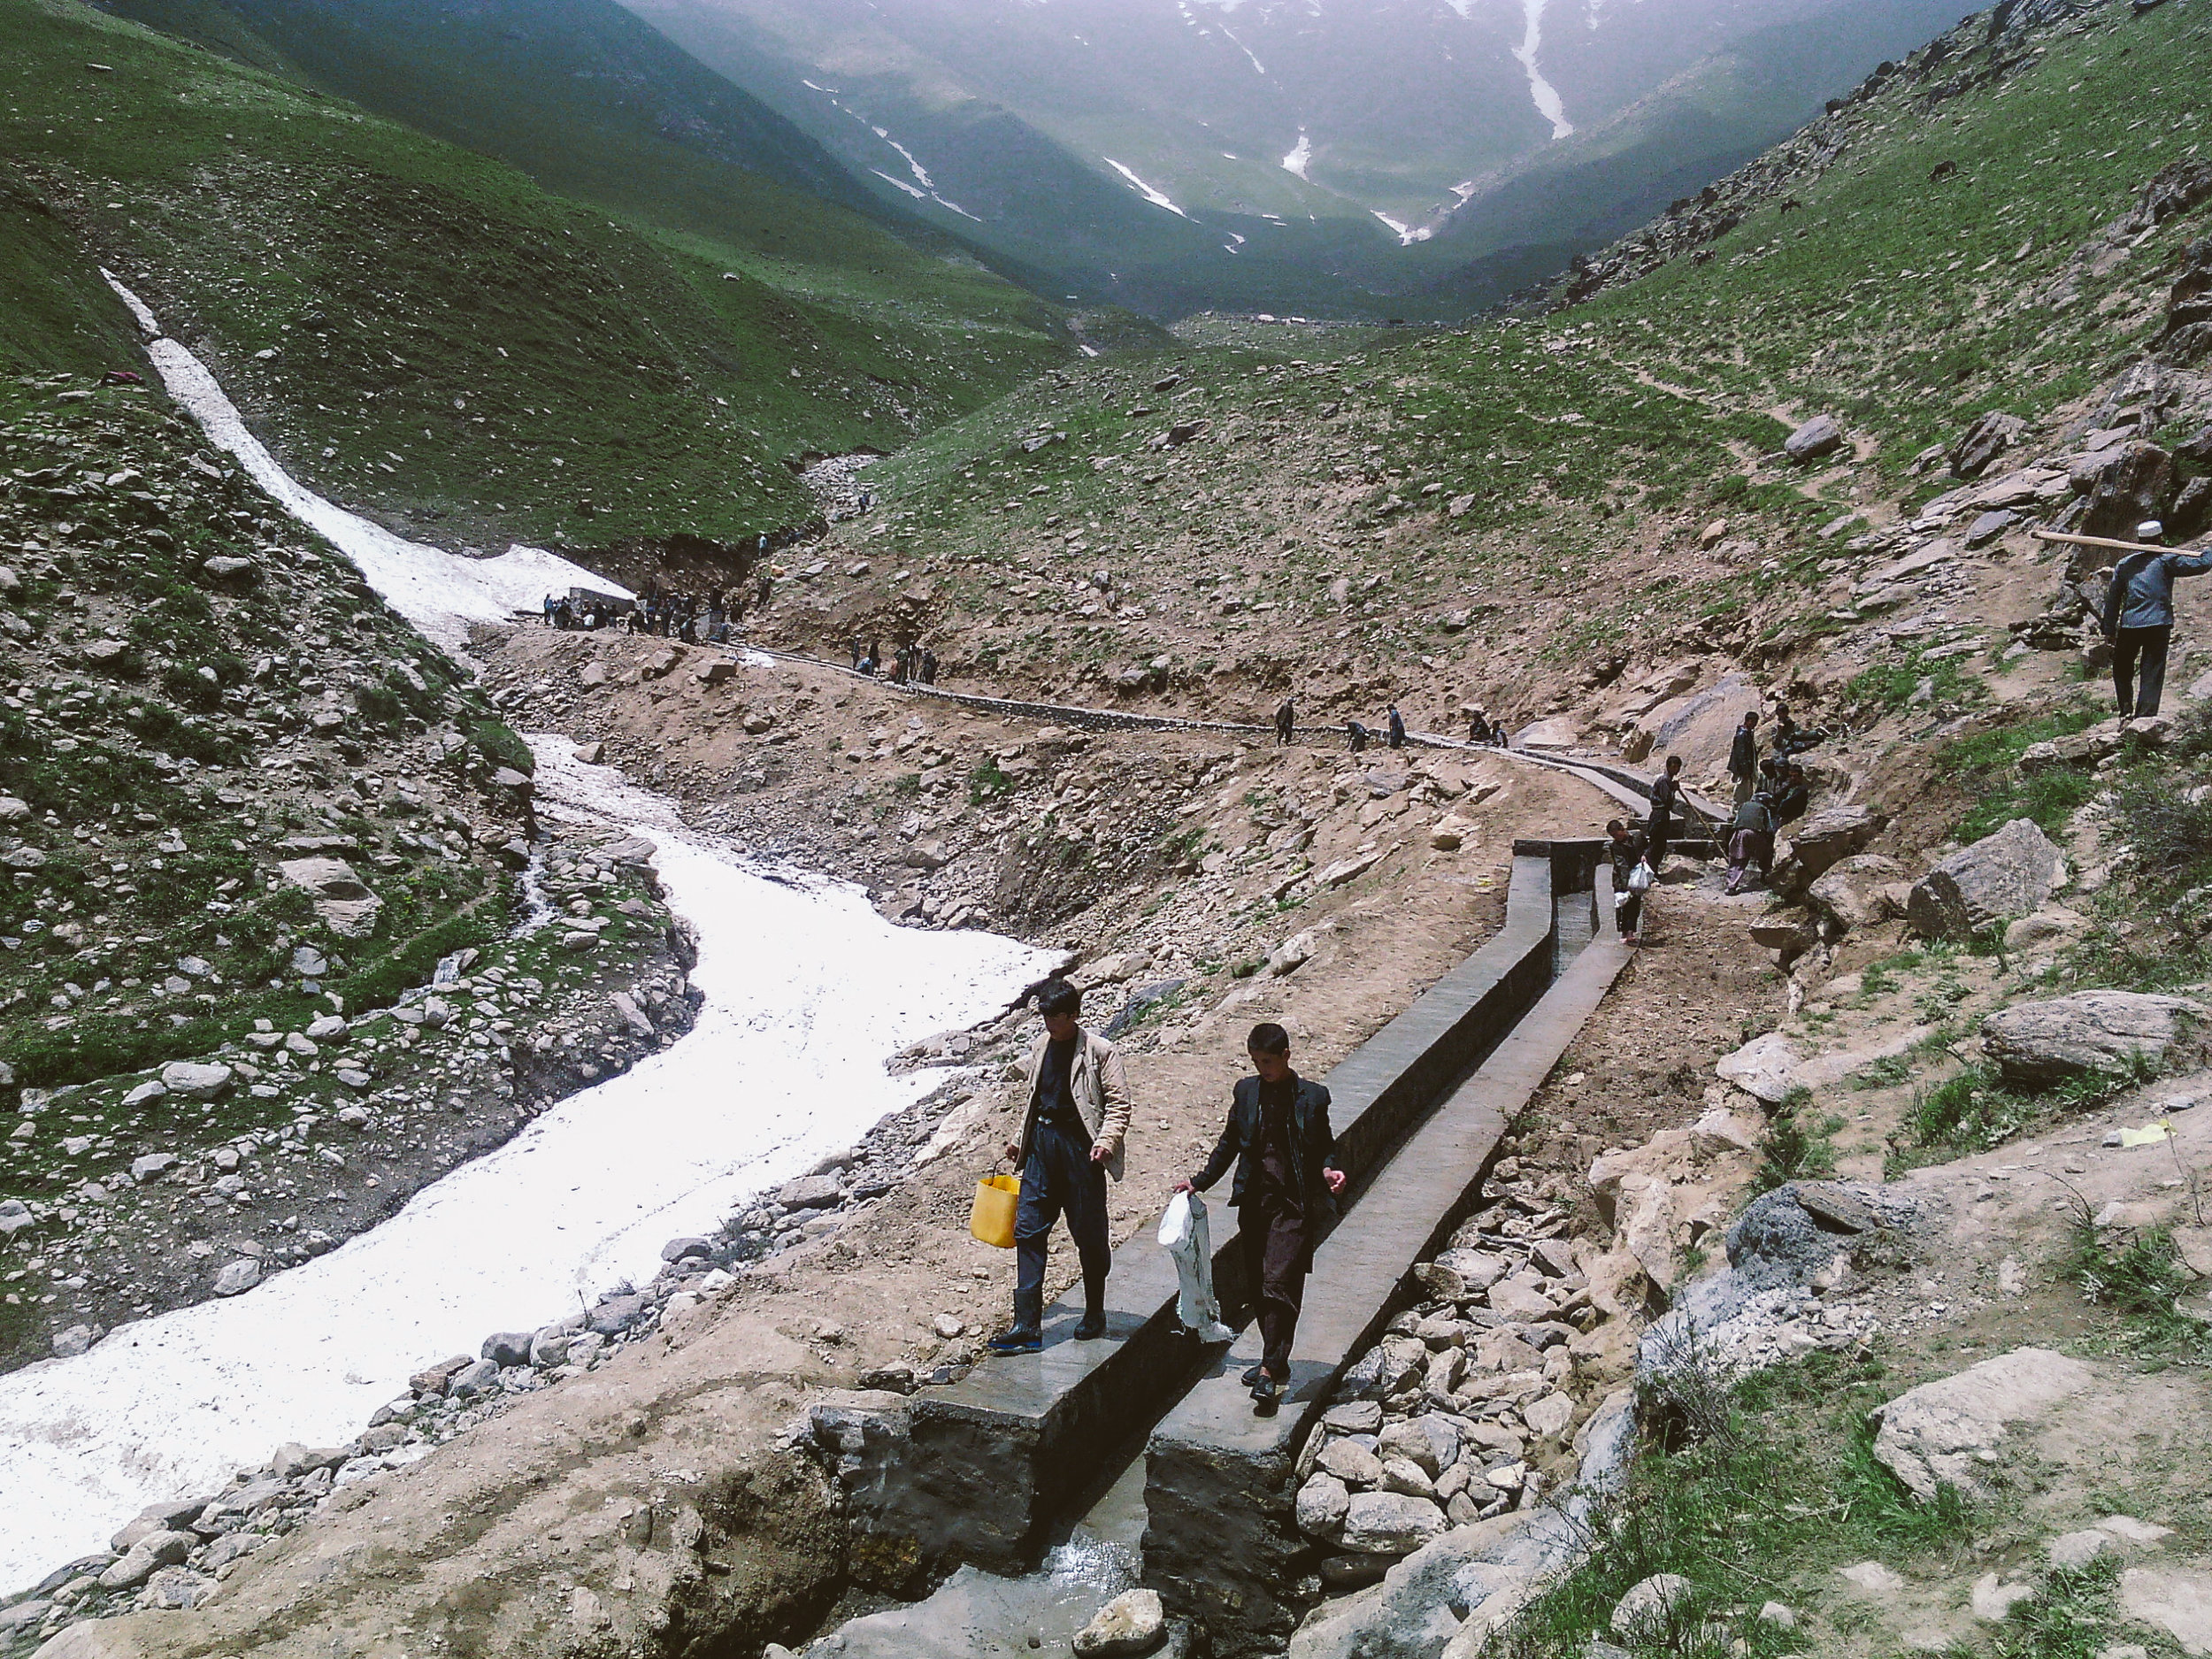 Construction of irrigation canals that will channel water to farmers for irrigation